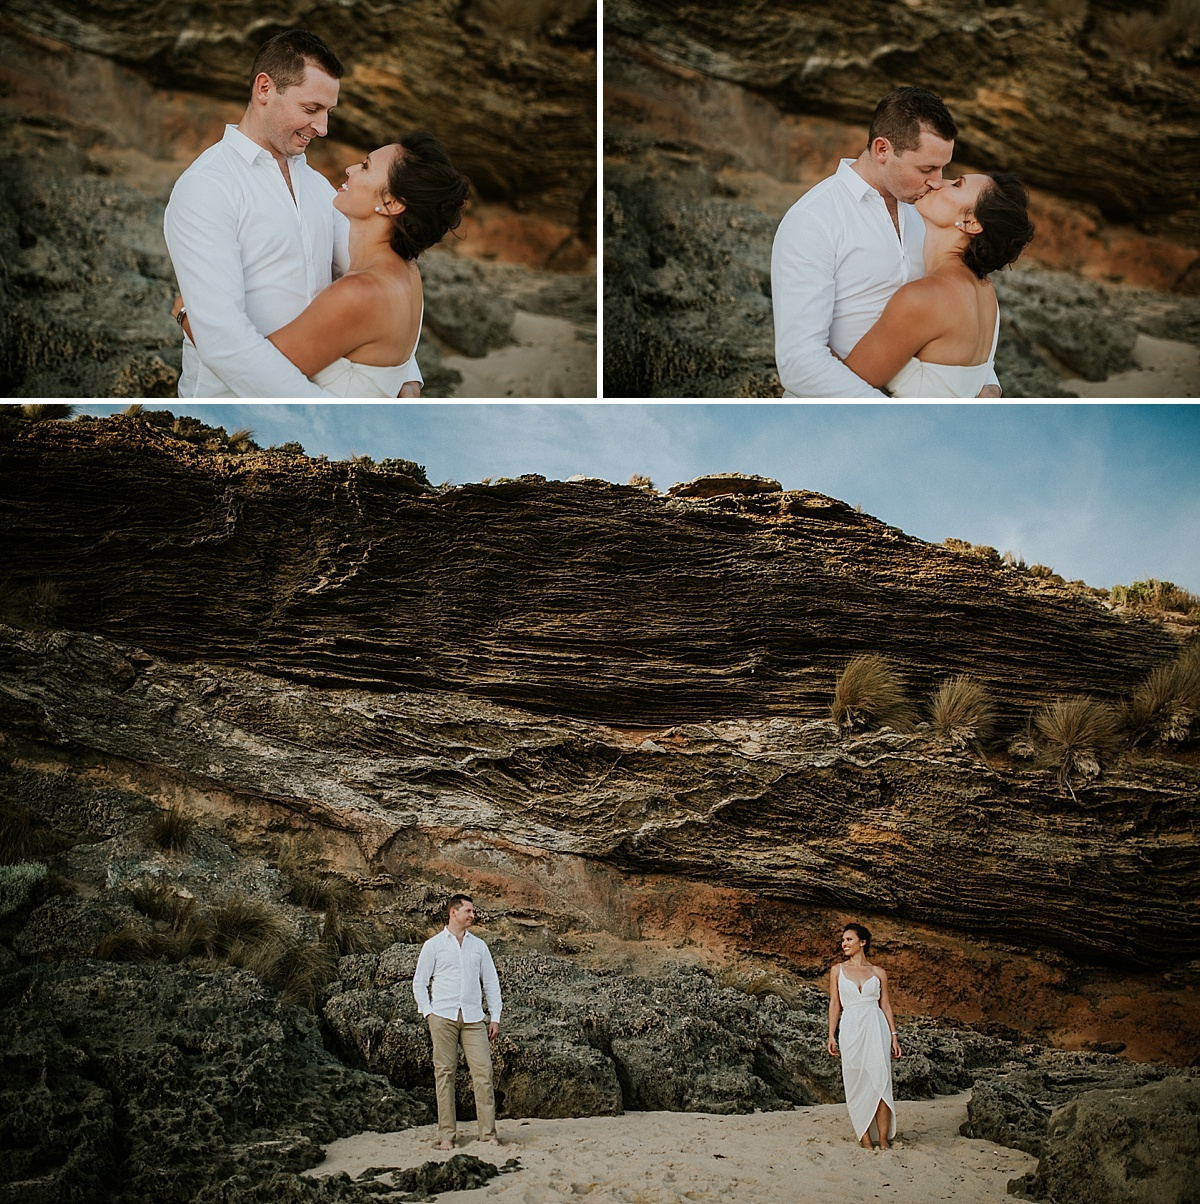 Zoe&Marc_Mornington-Peninsula-Candid-Romantic-Back-Beach-Engagement-Session_Melbourne-Quirky-Wedding-Photography_27